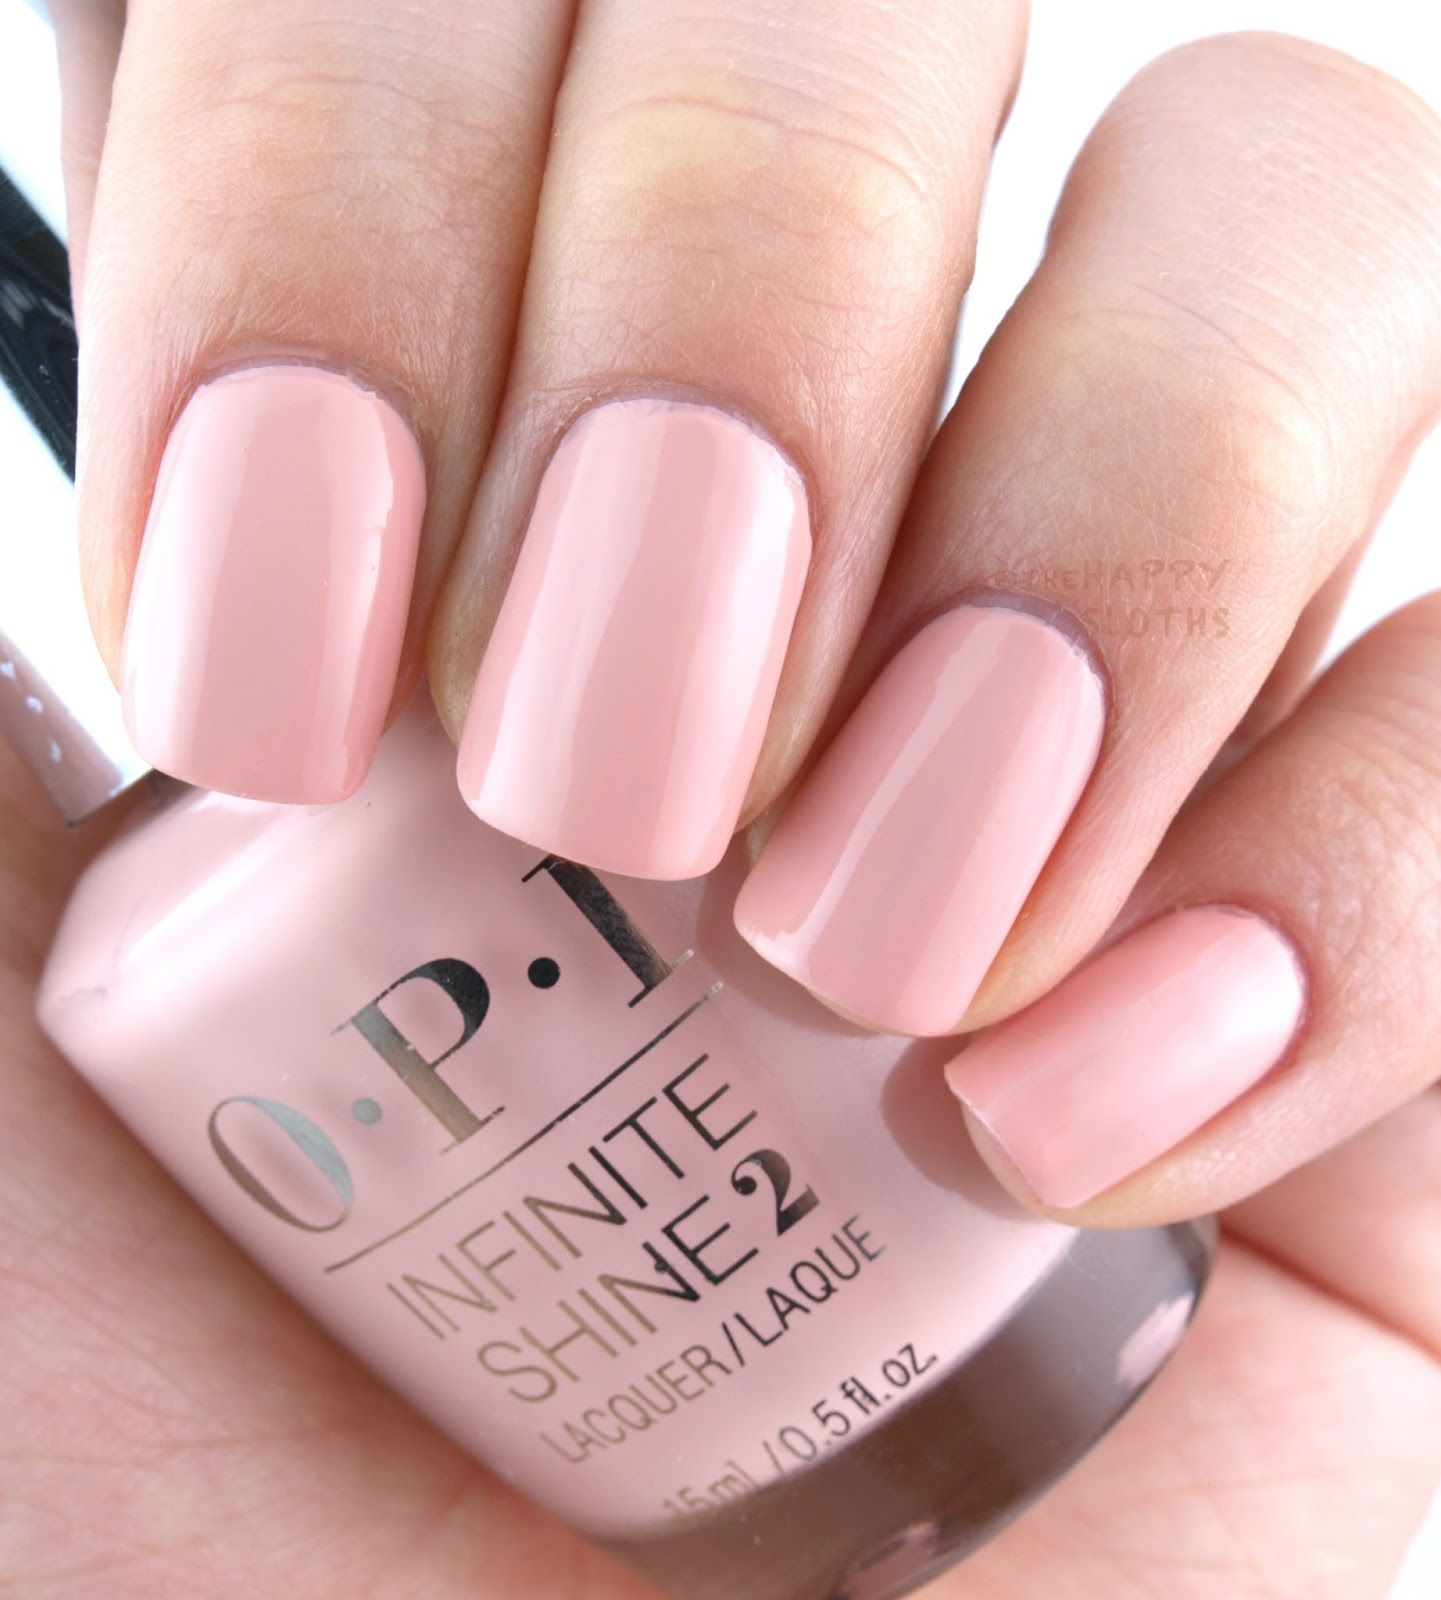 OPI Fiji Collection for Spring/Summer 2017: Infinite Shine